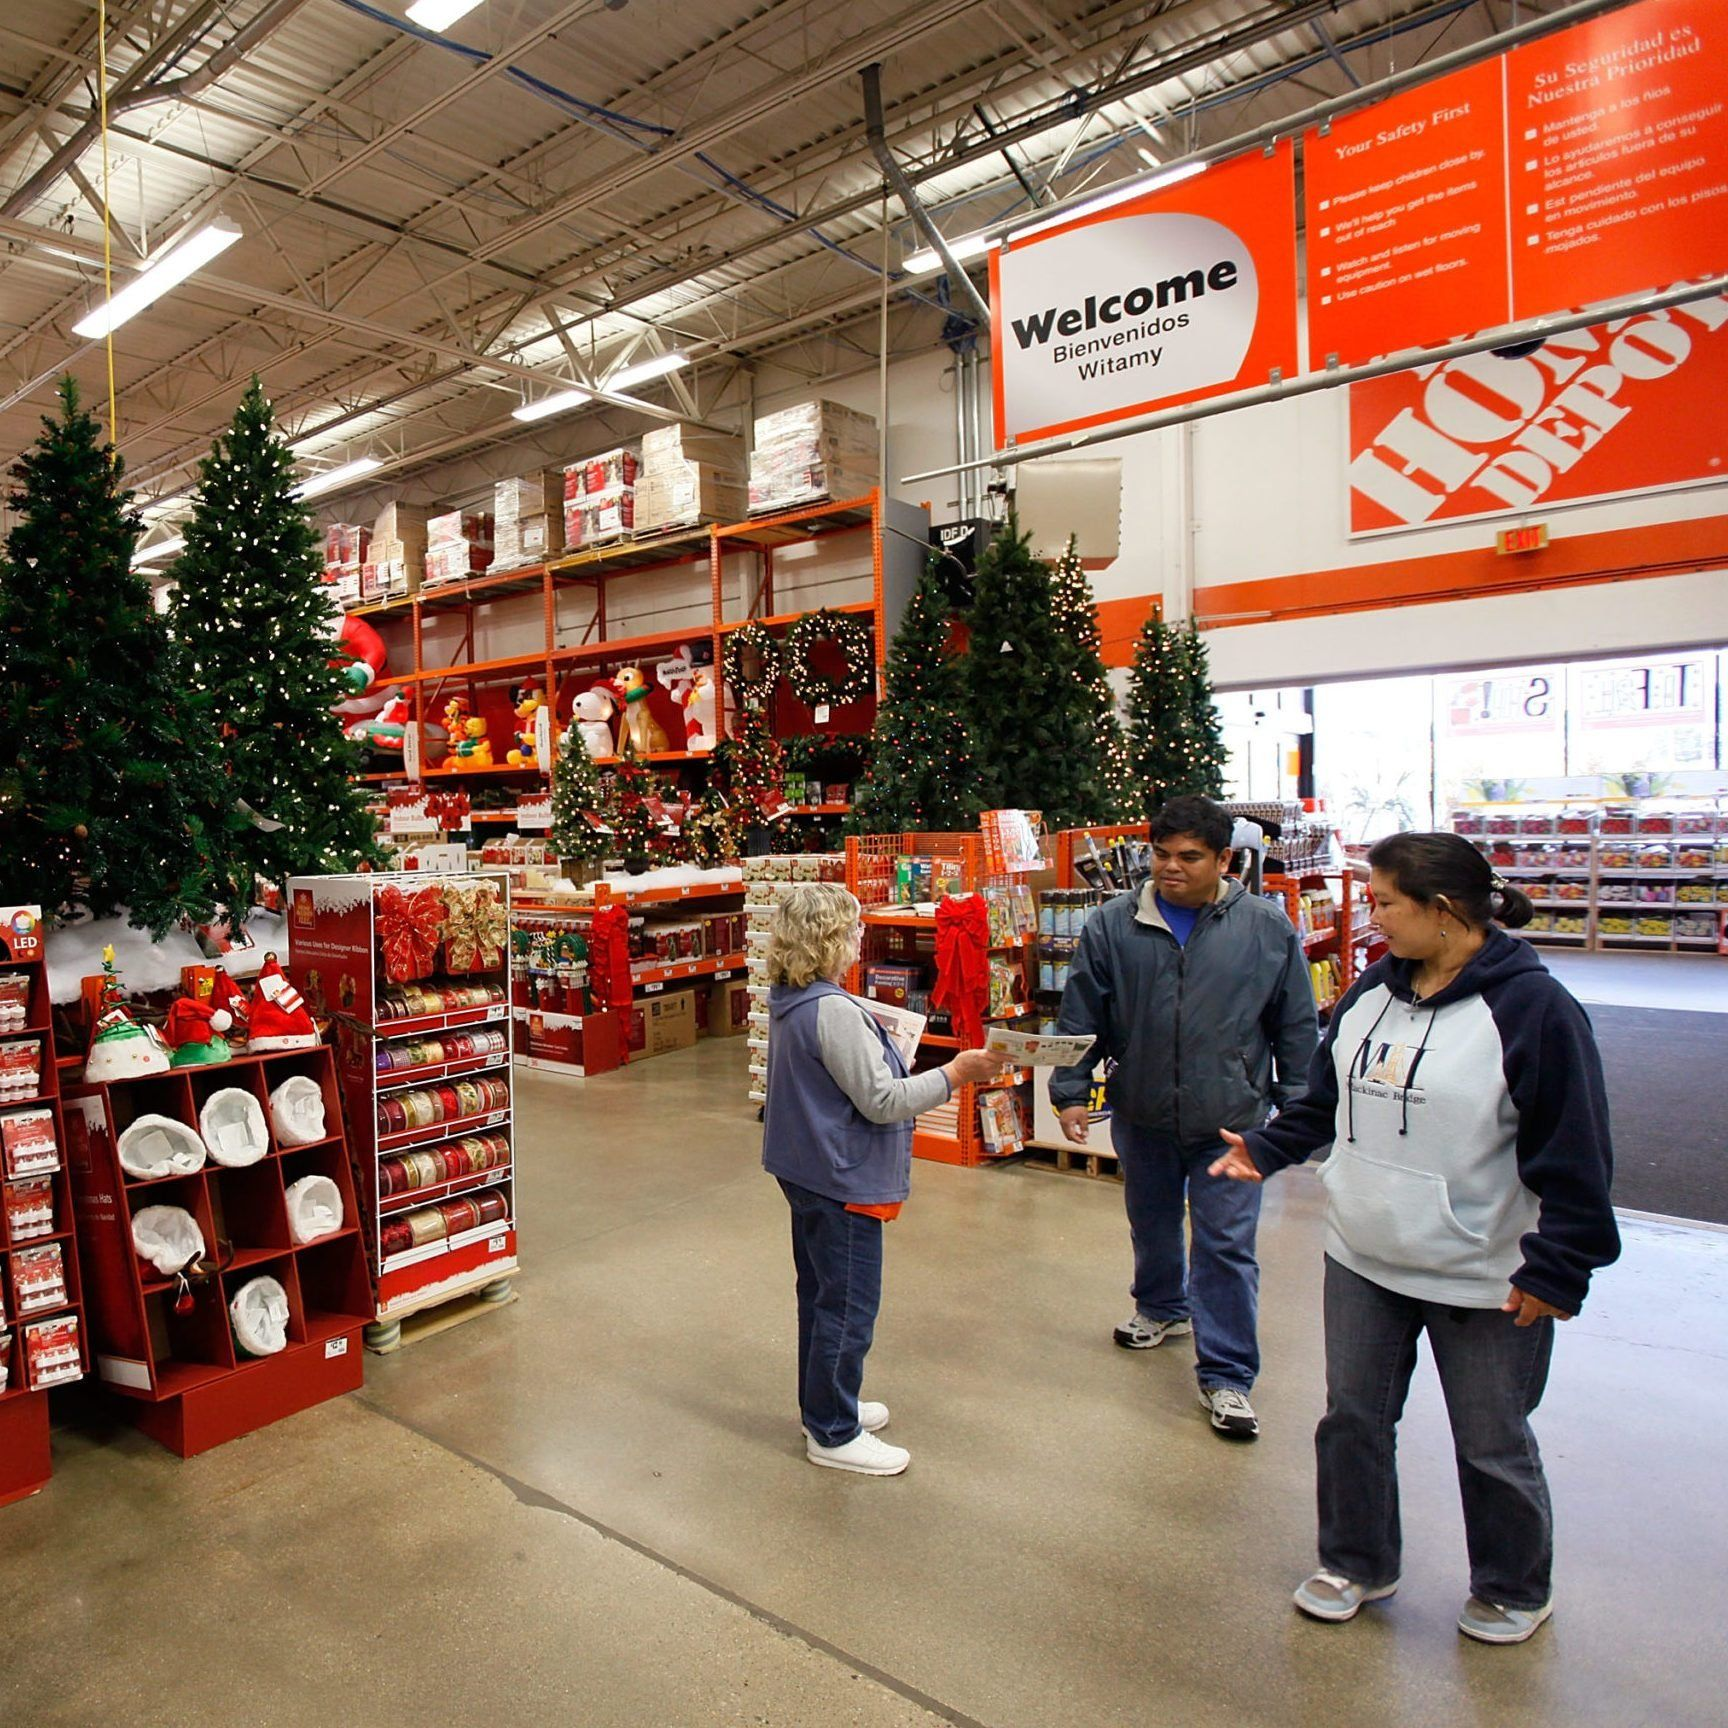 15 Festive Holiday Decorations You Wouldn T Think To Buy At Home Depot In 2020 Holiday Festival Home Depot Holiday Decor